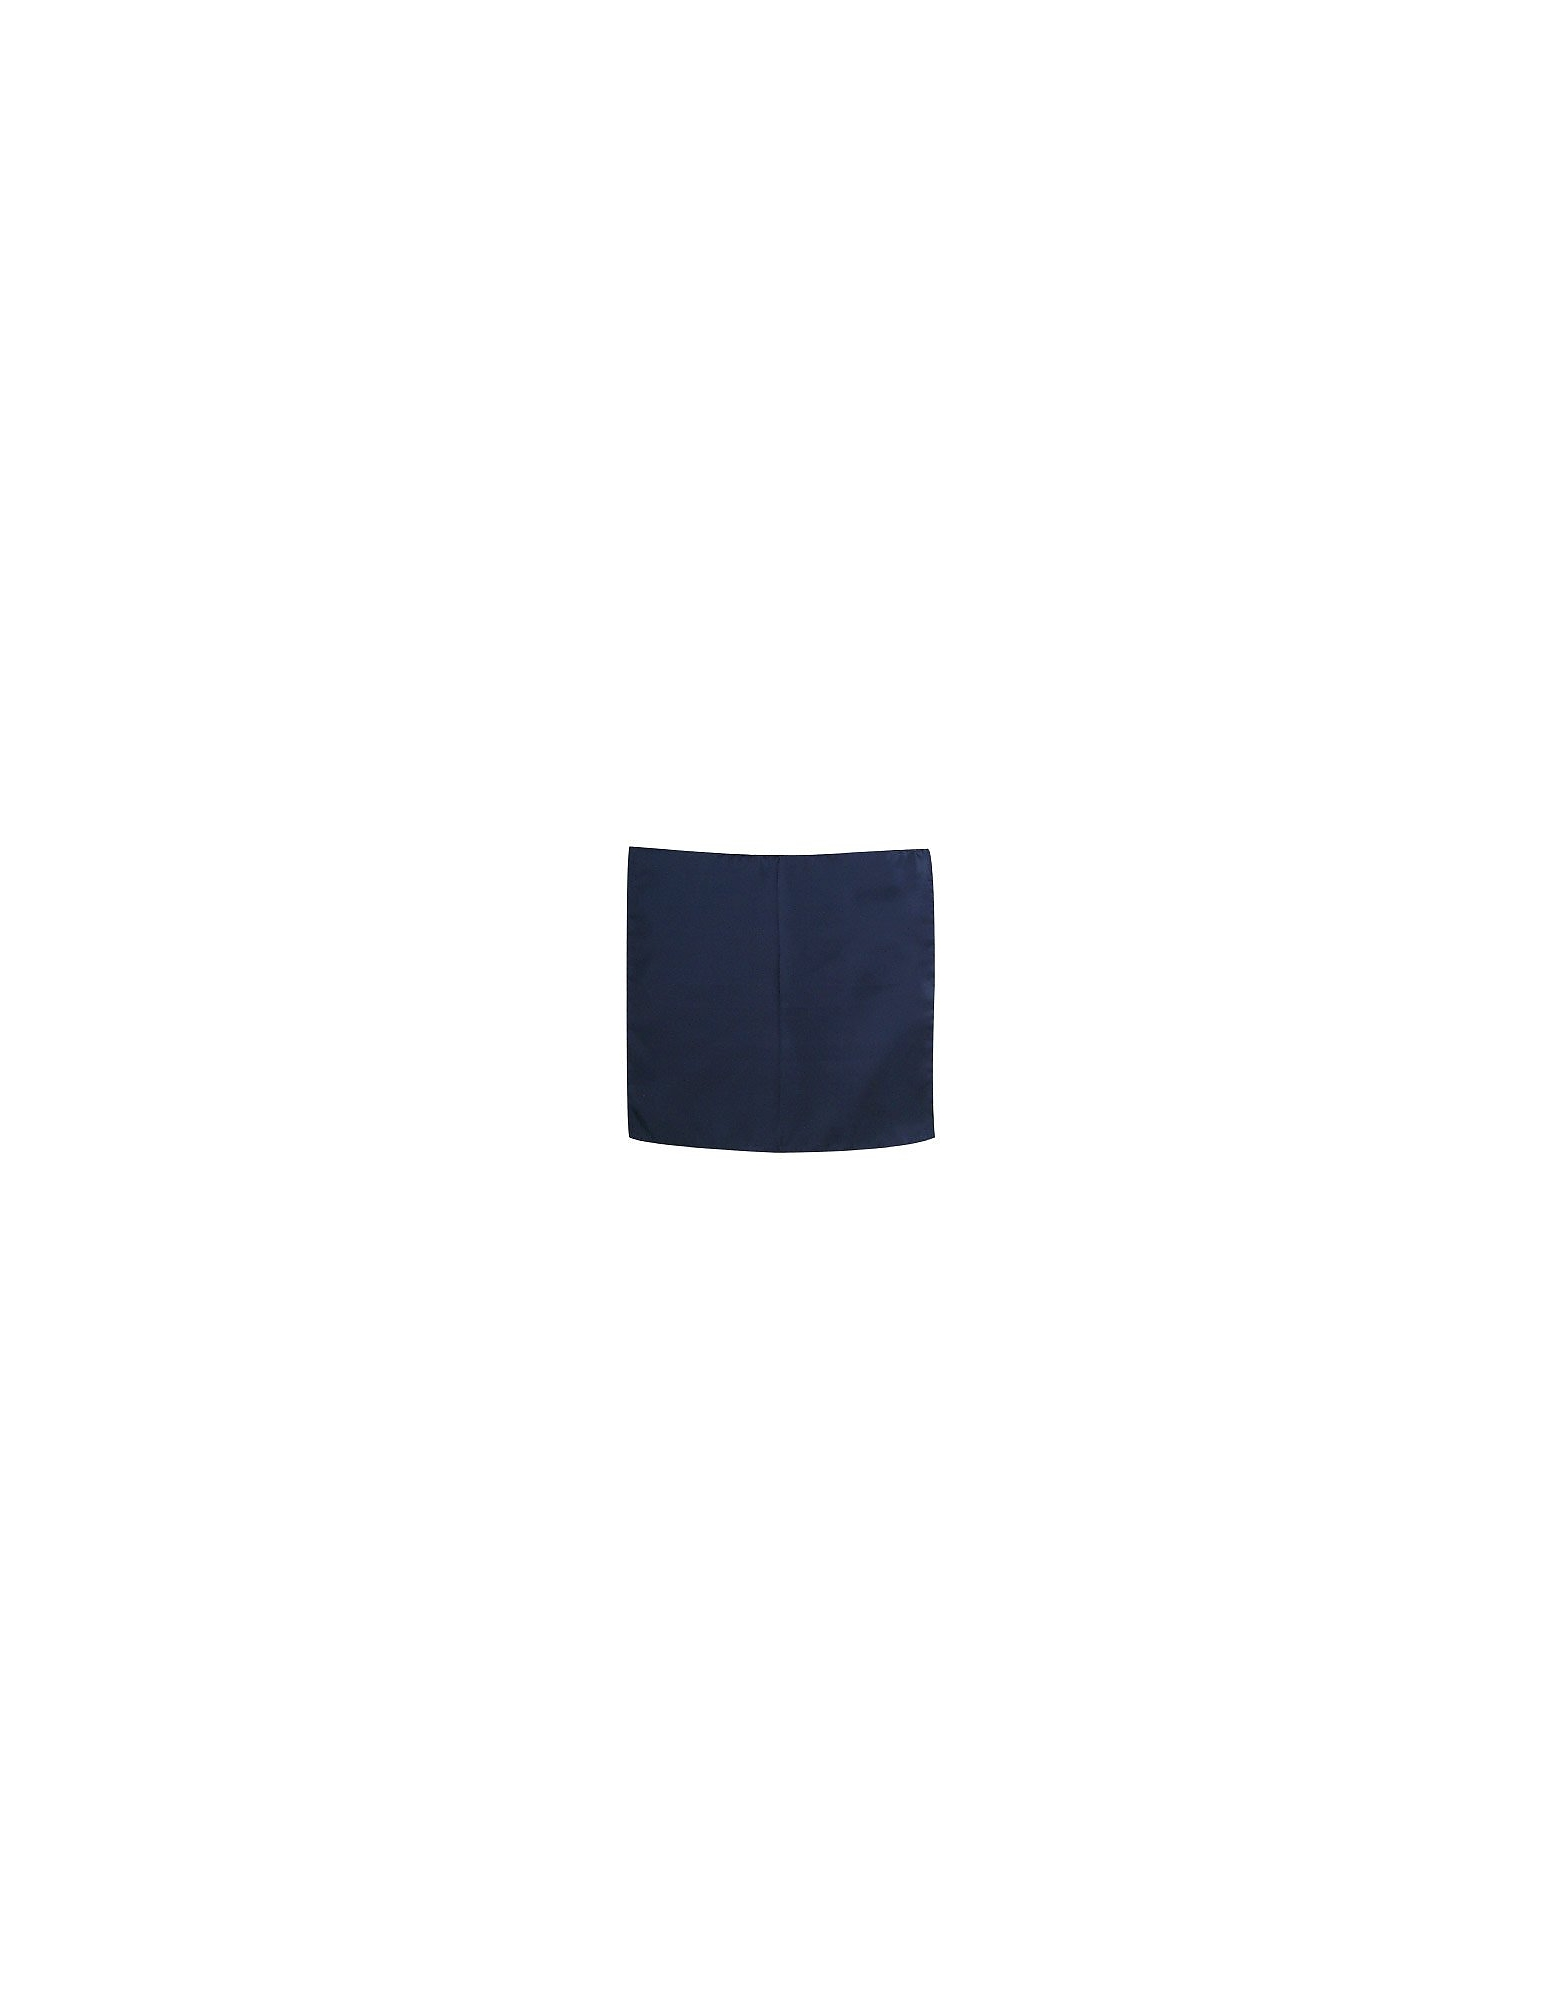 Forzieri Pocket Squares, Navy Blue Silk Pocket Square